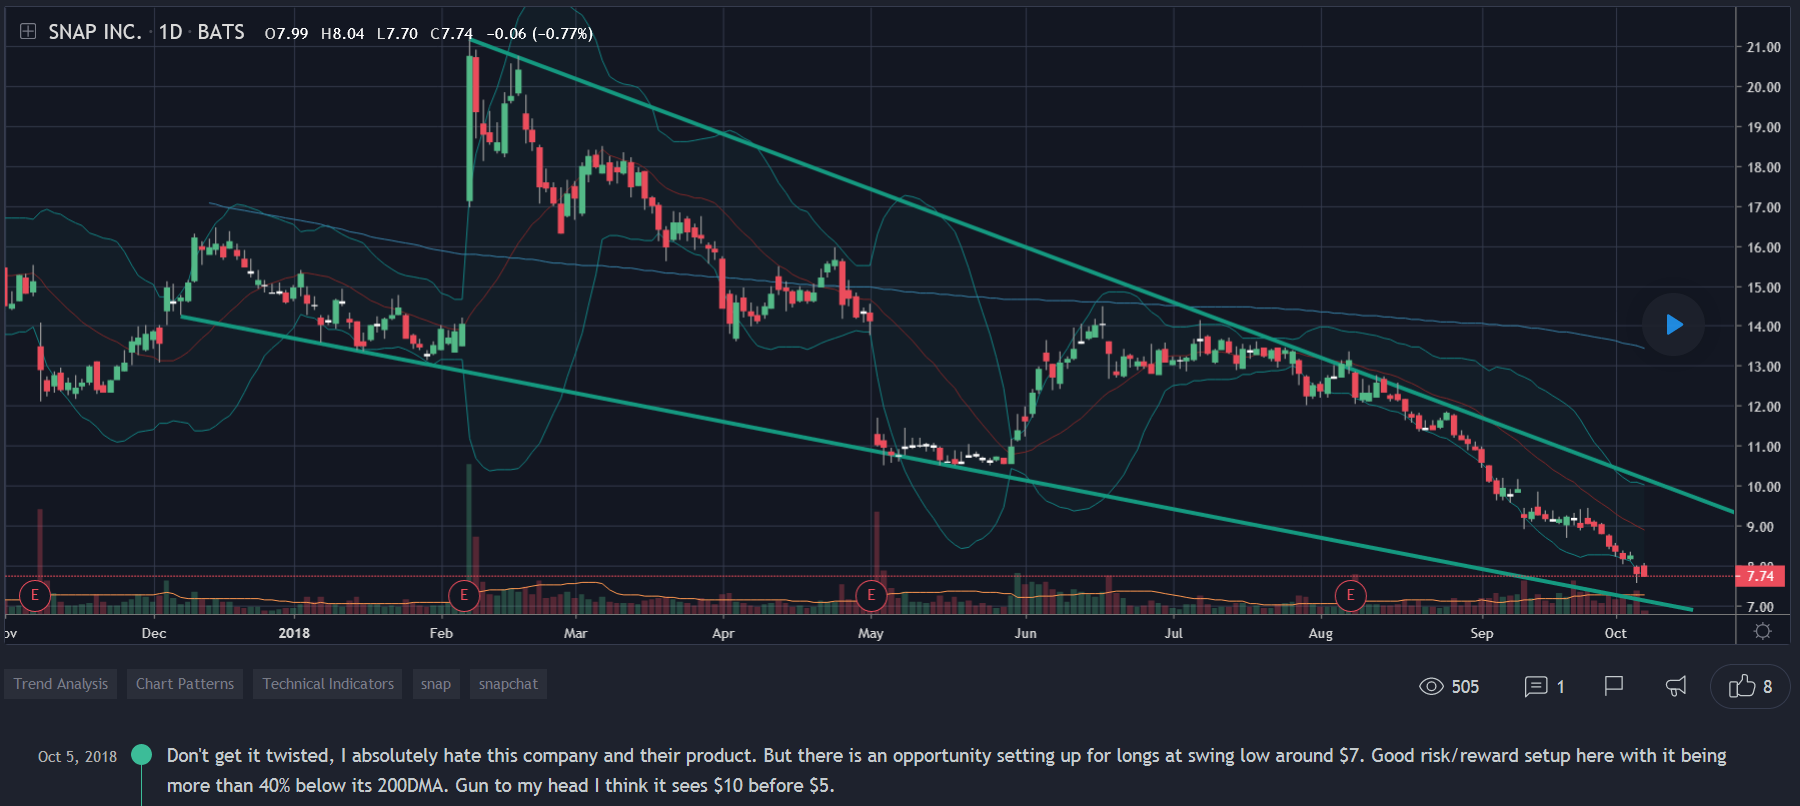 """Don't get it twisted, I absolutely hate this company and their product. But there is an opportunity setting up for longs at swing low around $7. Good risk/reward setup here with it being more than 40% below its 200DMA. Gun to my head I think it sees $10 before $5."" -Ramp Capital (10/5/18)"